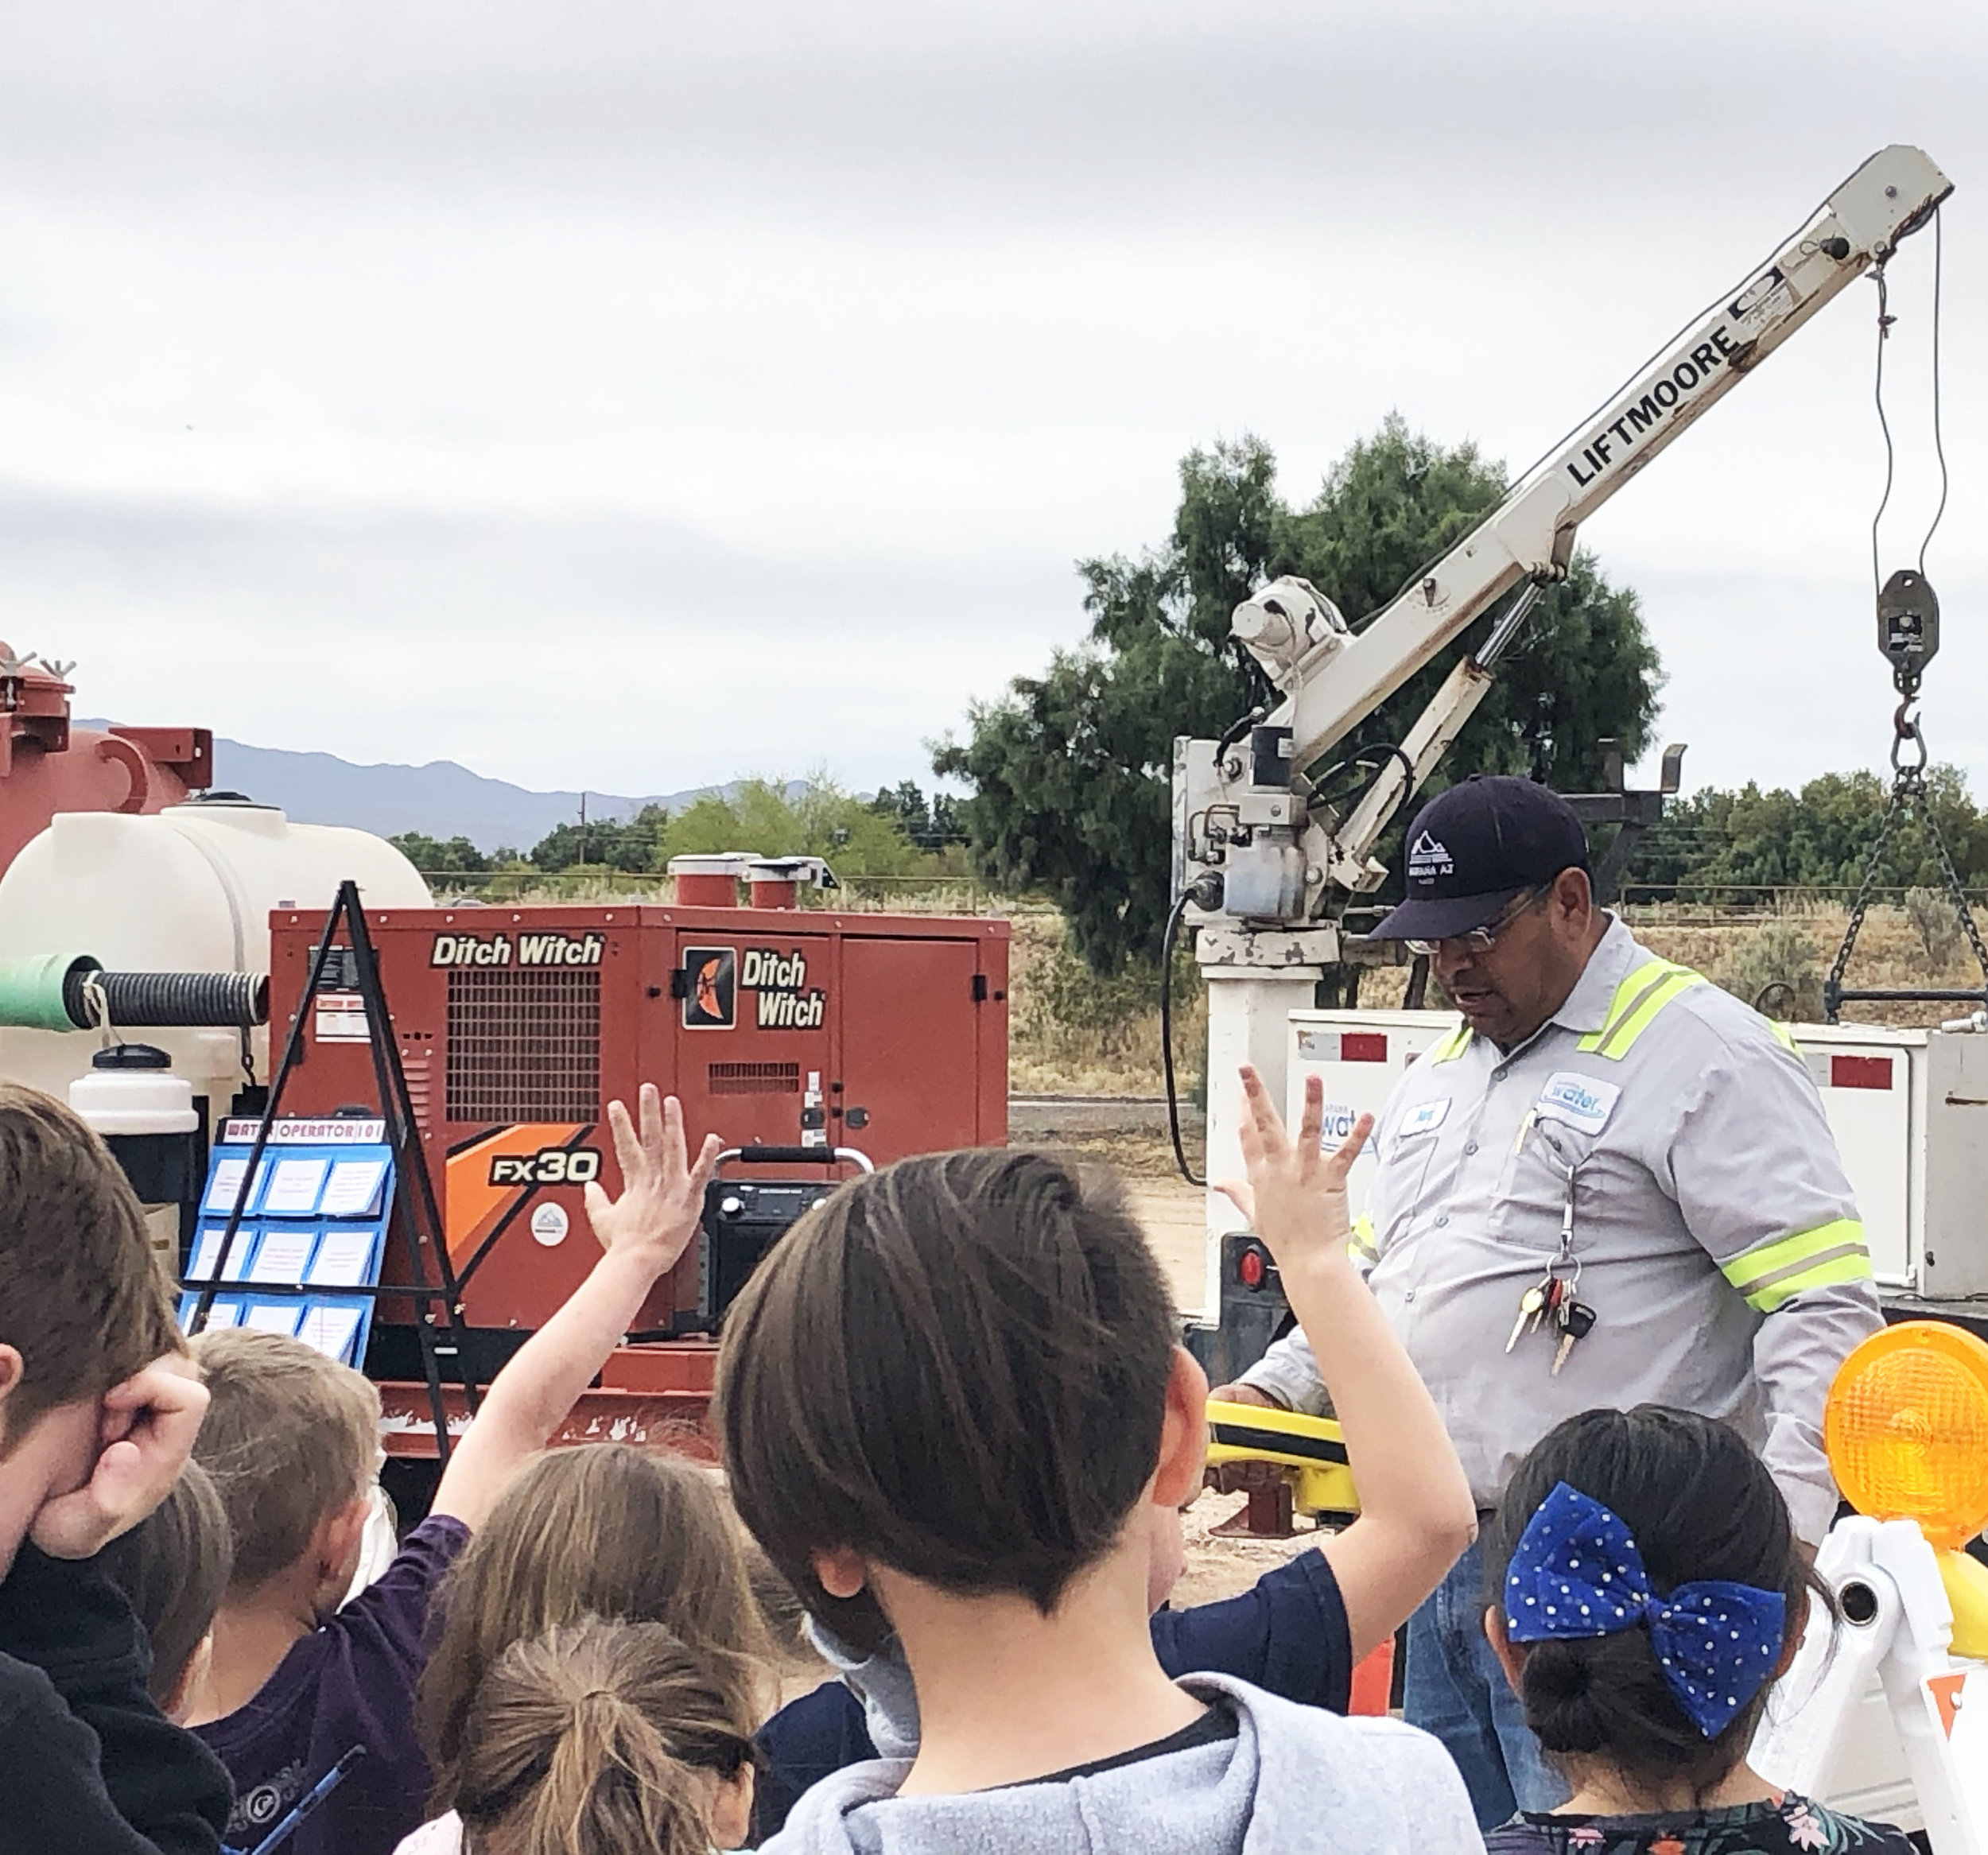 Marana Water was able to show off a lot of the tools they use every day to service Marana Water customers.